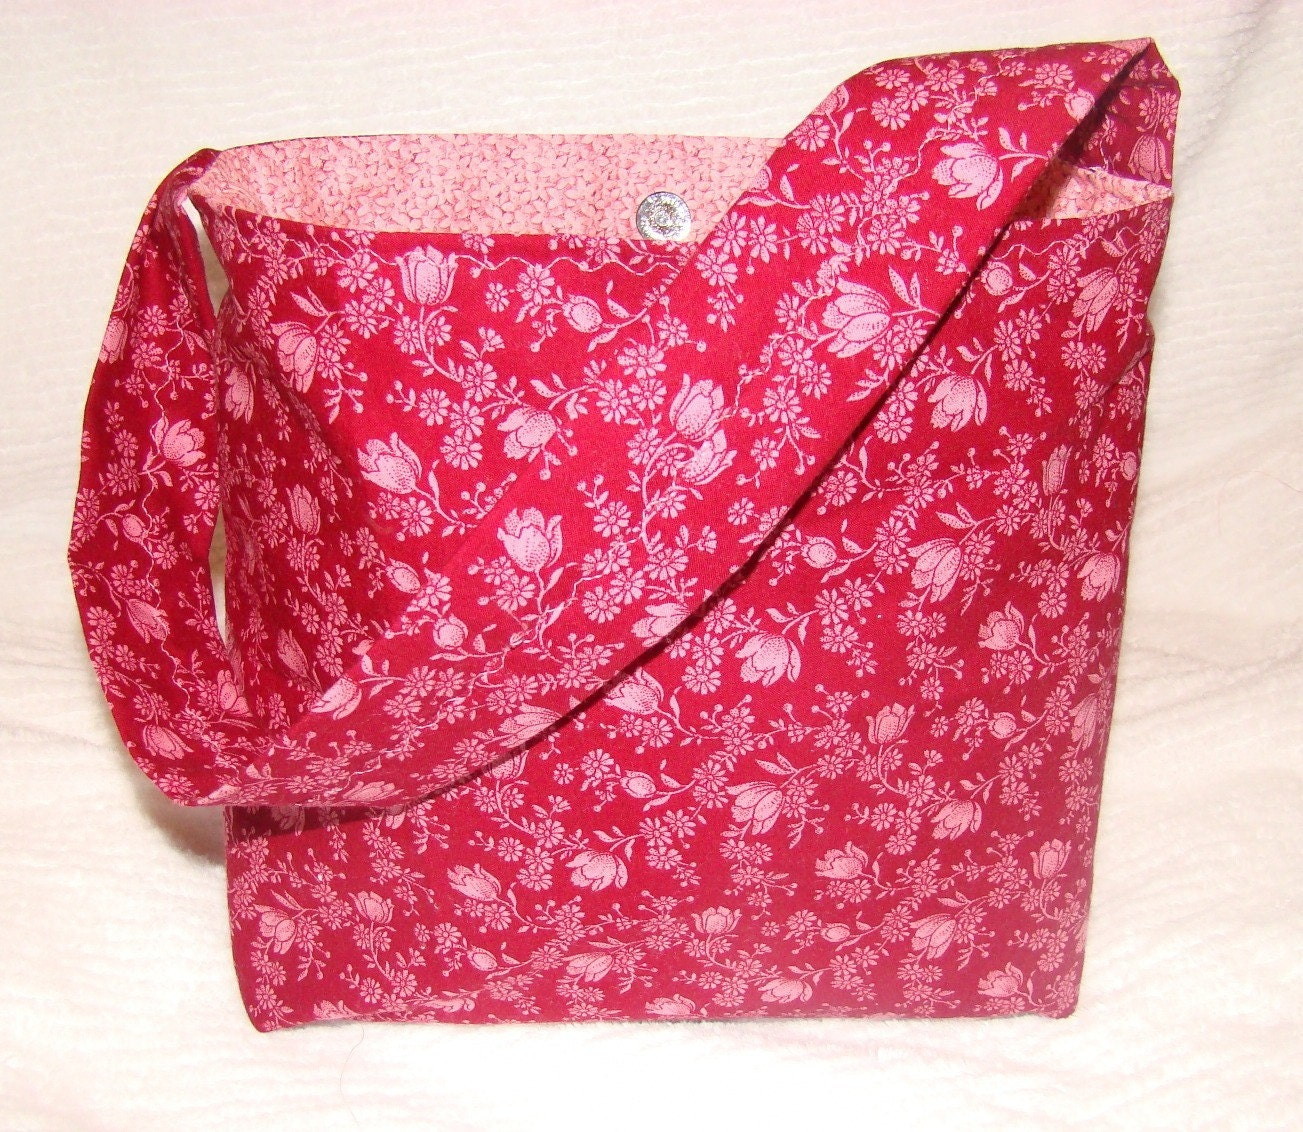 SALE Calico Cotton Deep Magenta and Pink Slouch Tote